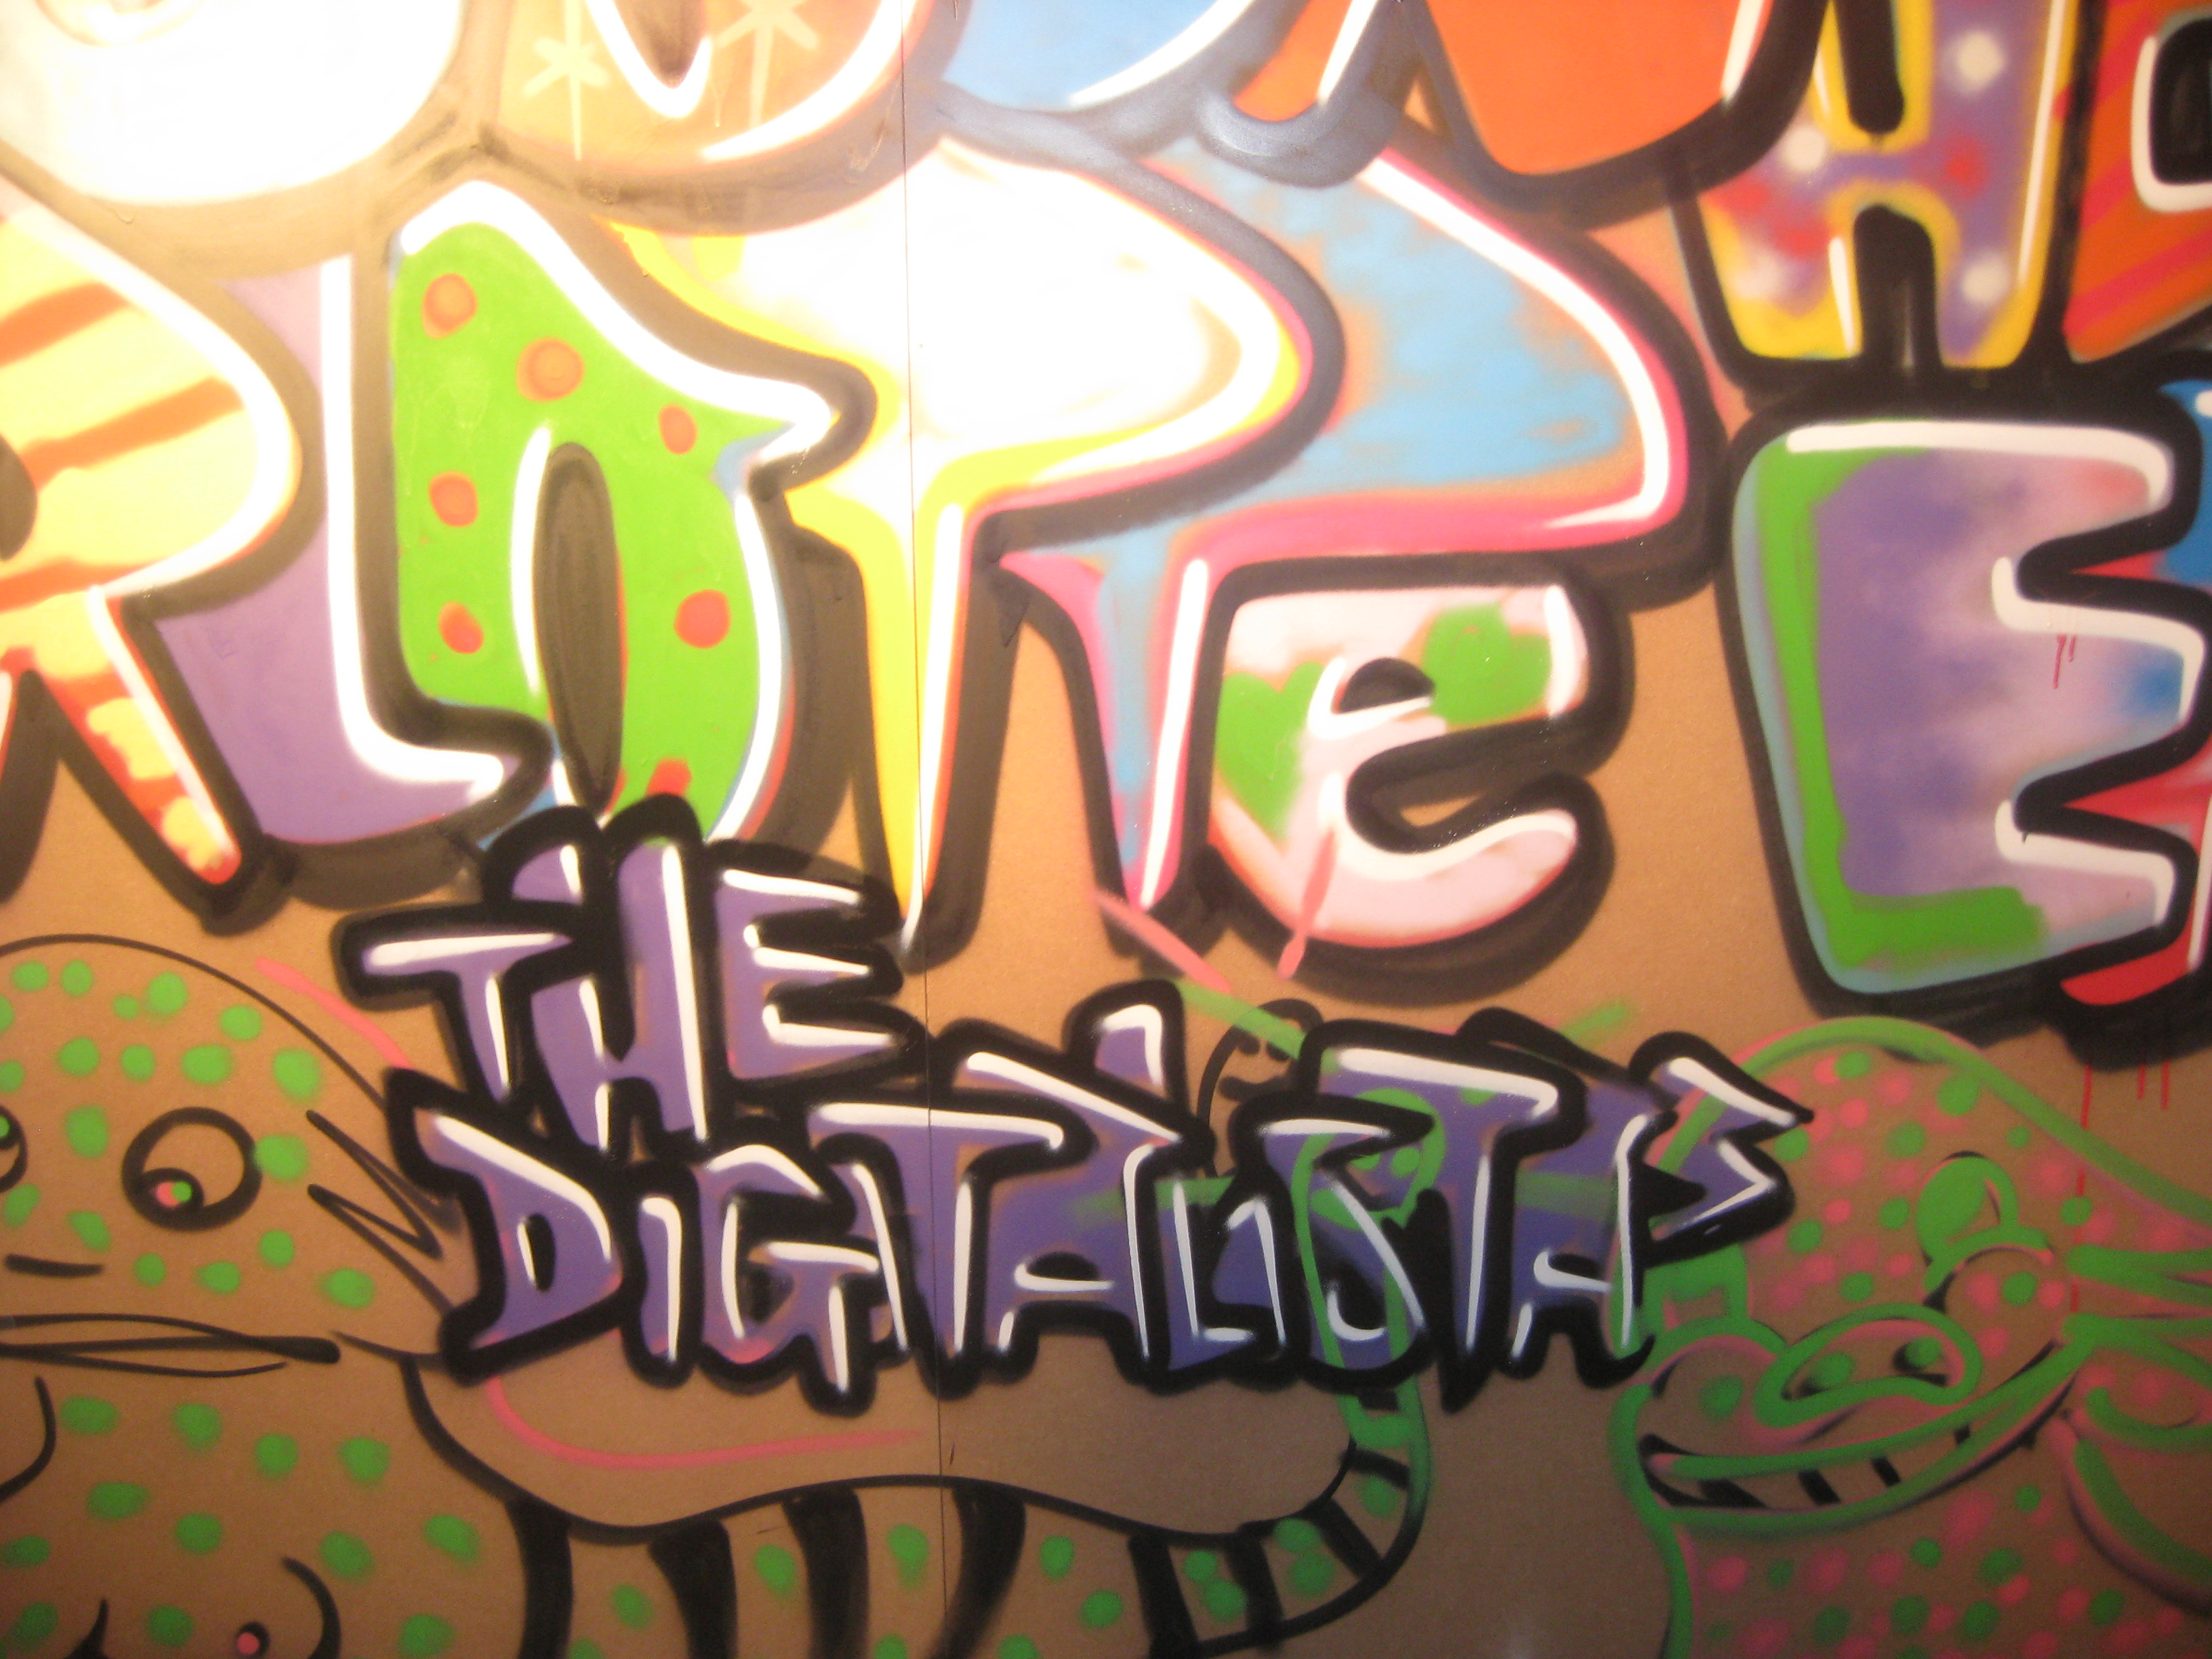 Digitalistic graffiti at Converse You're Here